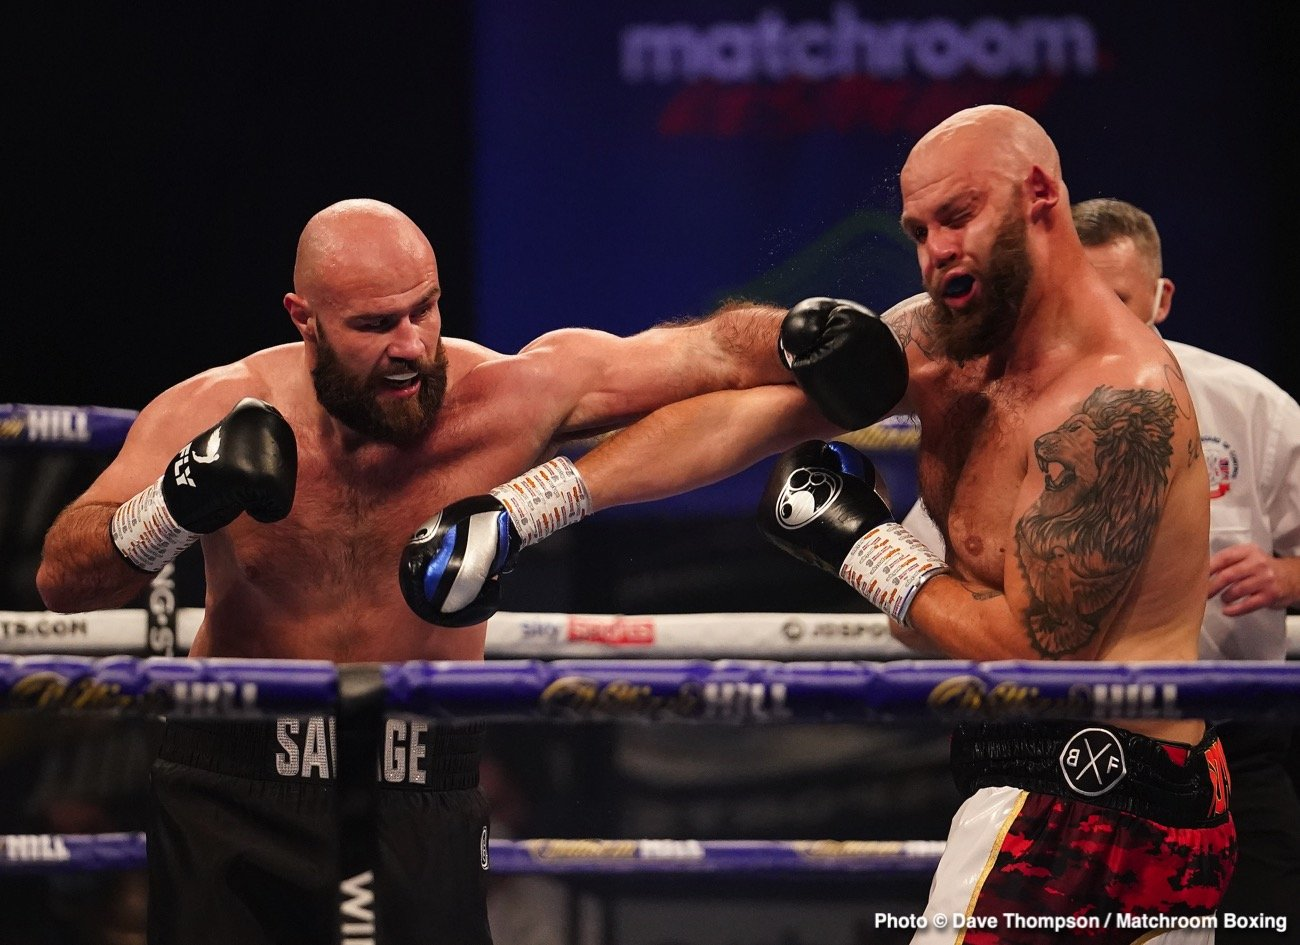 """Alen Babic, Tom Little - Tonight on the Wembley card topped by the Benn-Formella fight, heavyweight slugger Alen Babic picked up another exciting win. The unbeaten Croatian known as """"The Savage"""" stopped a game Tom Little in the third round to improve to 6-0(6). Little, the older man by three years at age 33, falls to 10-9(3)."""